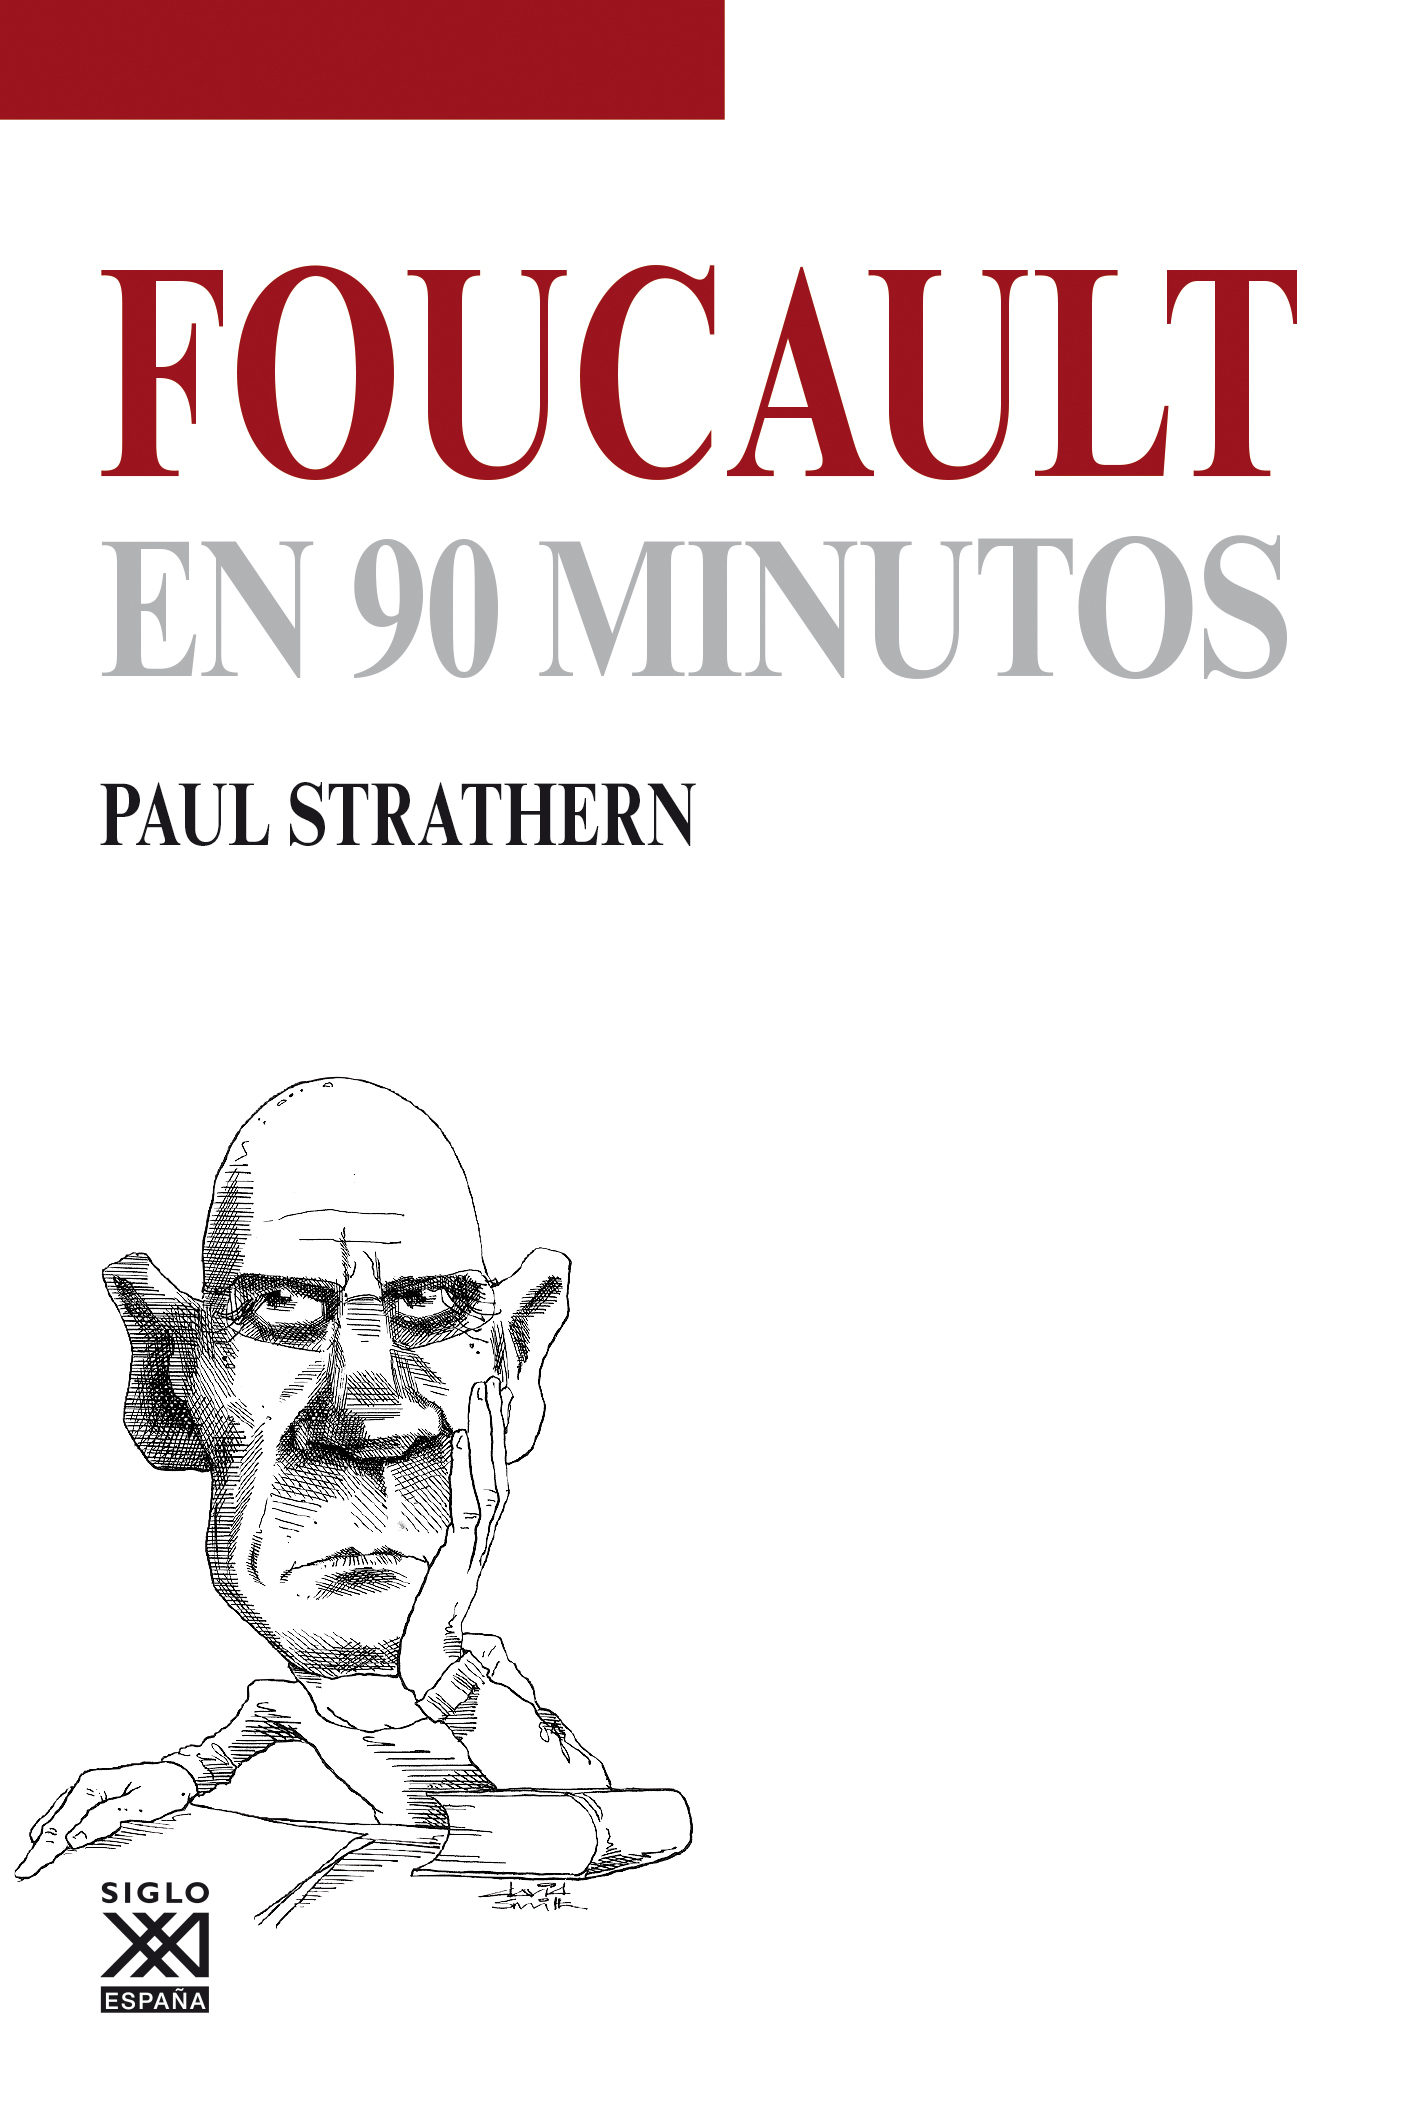 Edgardo Castro Introduccion A Foucault Pdf Free